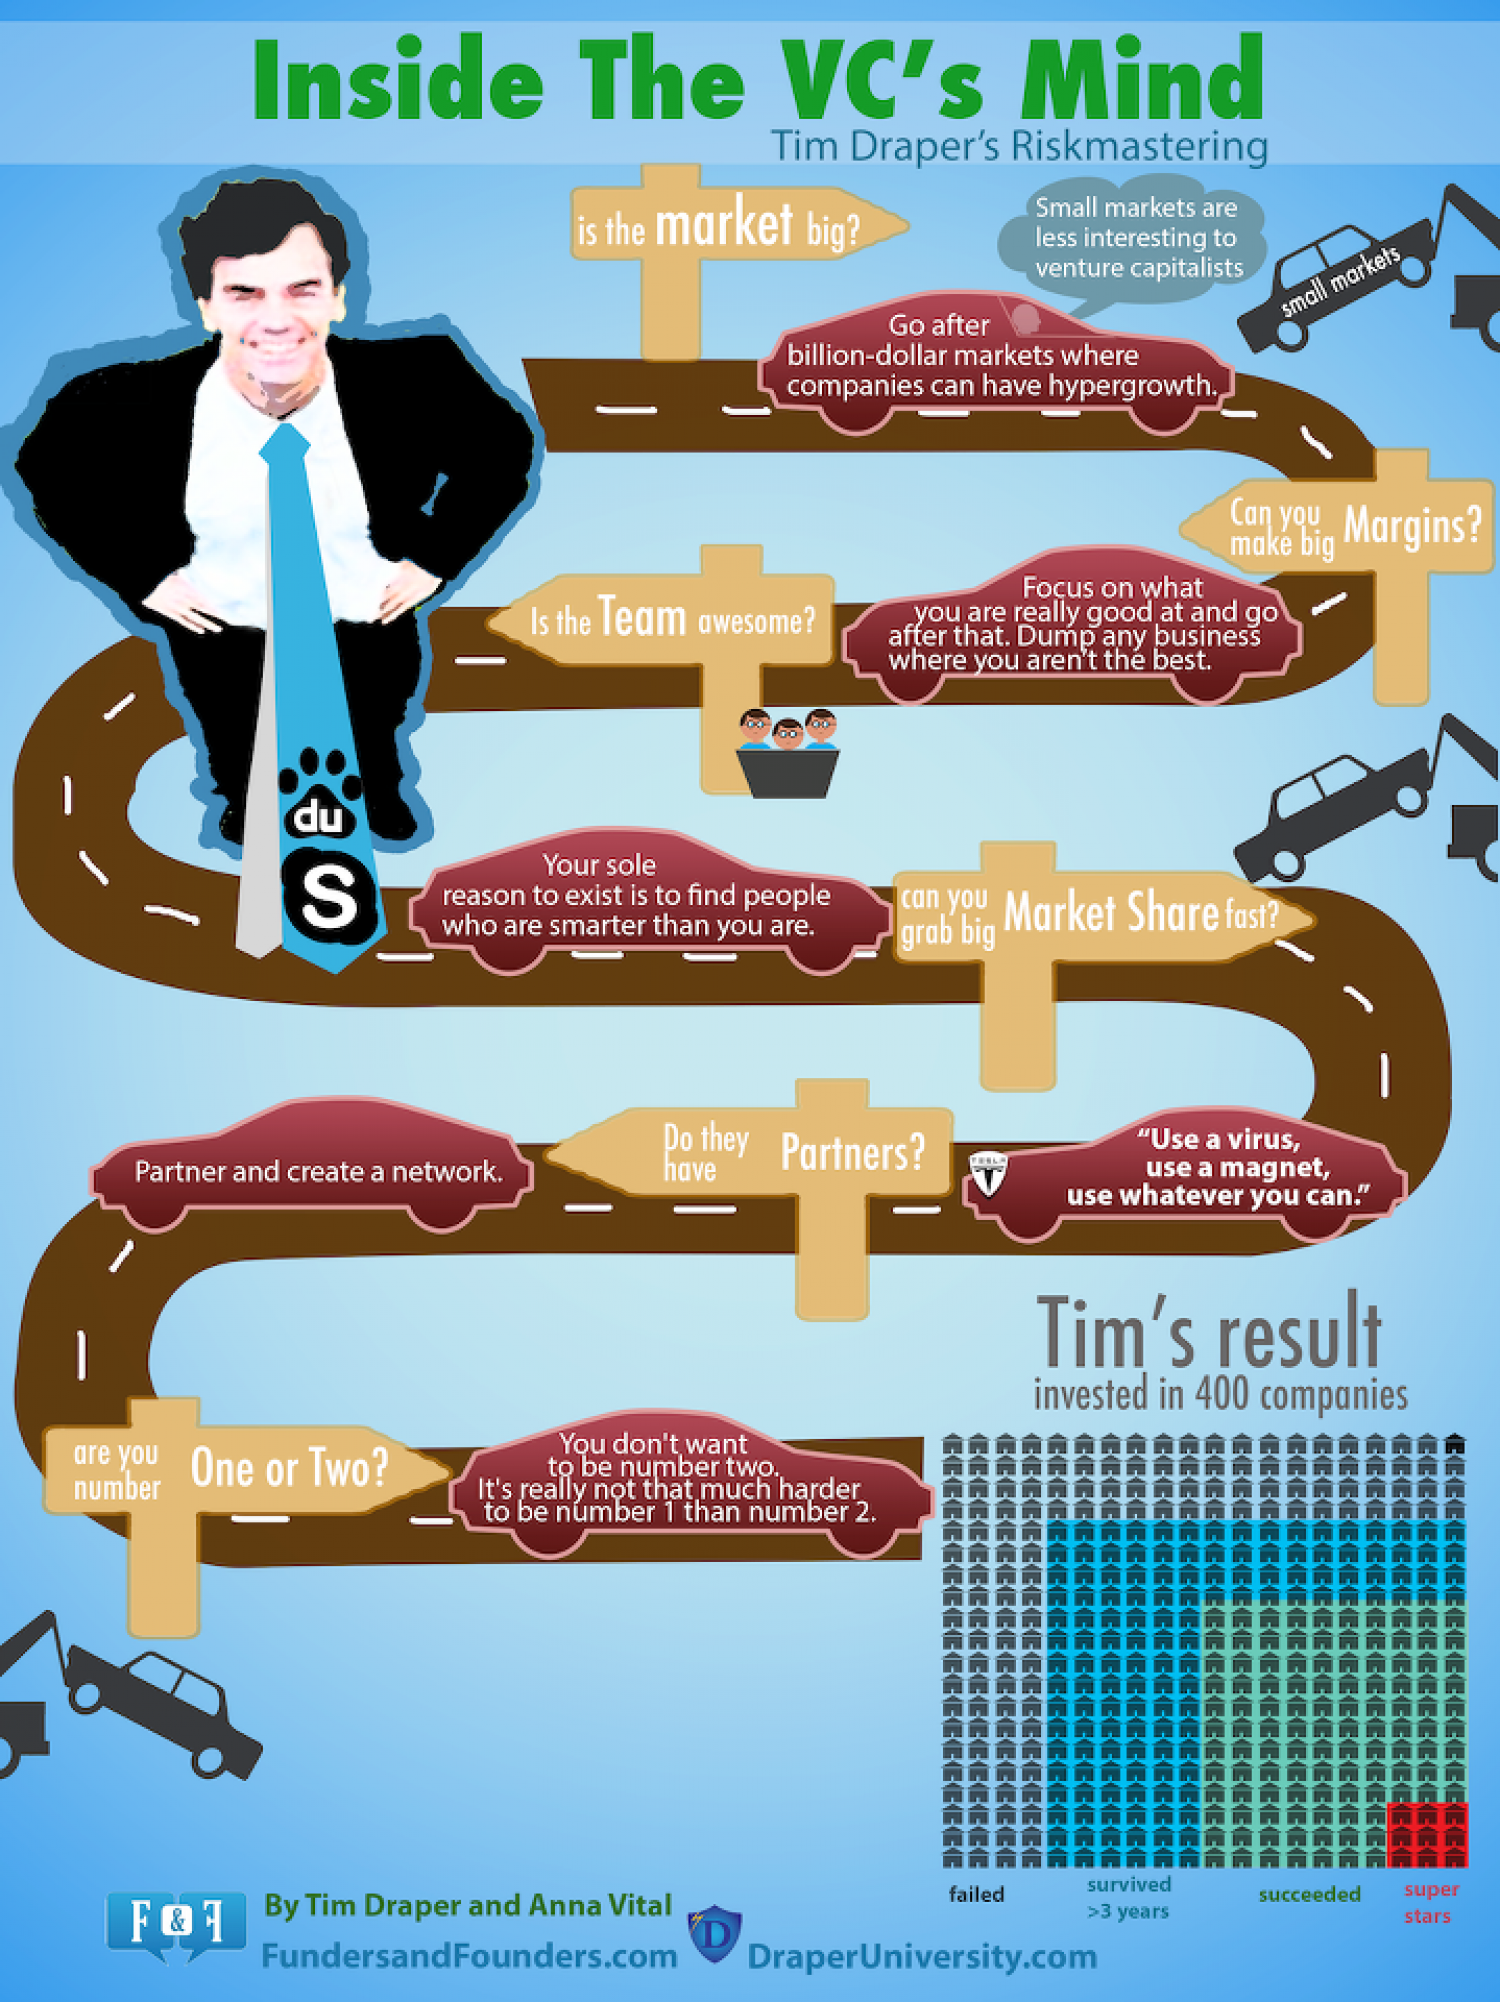 Inside The VC's Mind - Tim Drapper Riskmastering Infographic